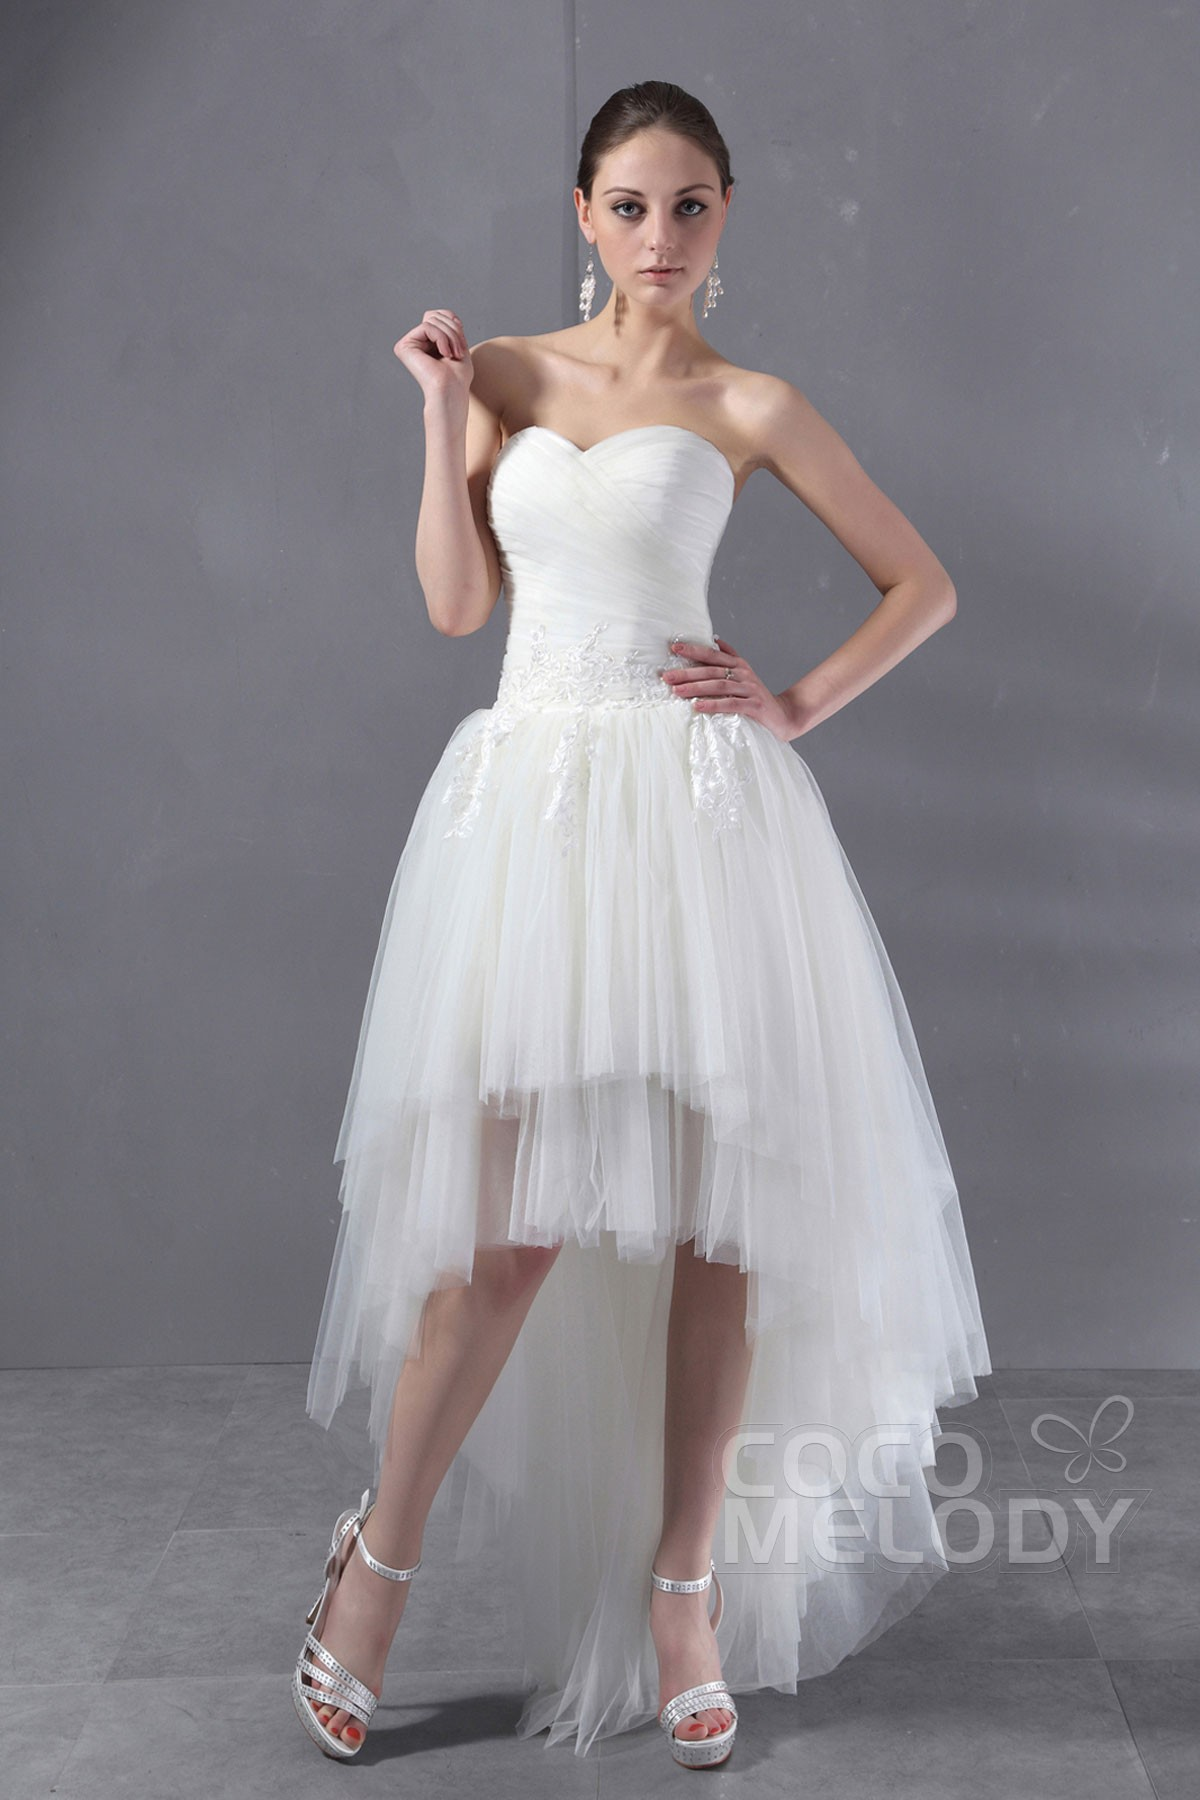 Traditional Asymmetrical Heart Tulle Wedding Dress Asymmetrical Heart Tulle Wedding Dress Tulle Wedding Dresses Sleeves Tulle Wedding Dress Sewing Patterns wedding dress Tulle Wedding Dress